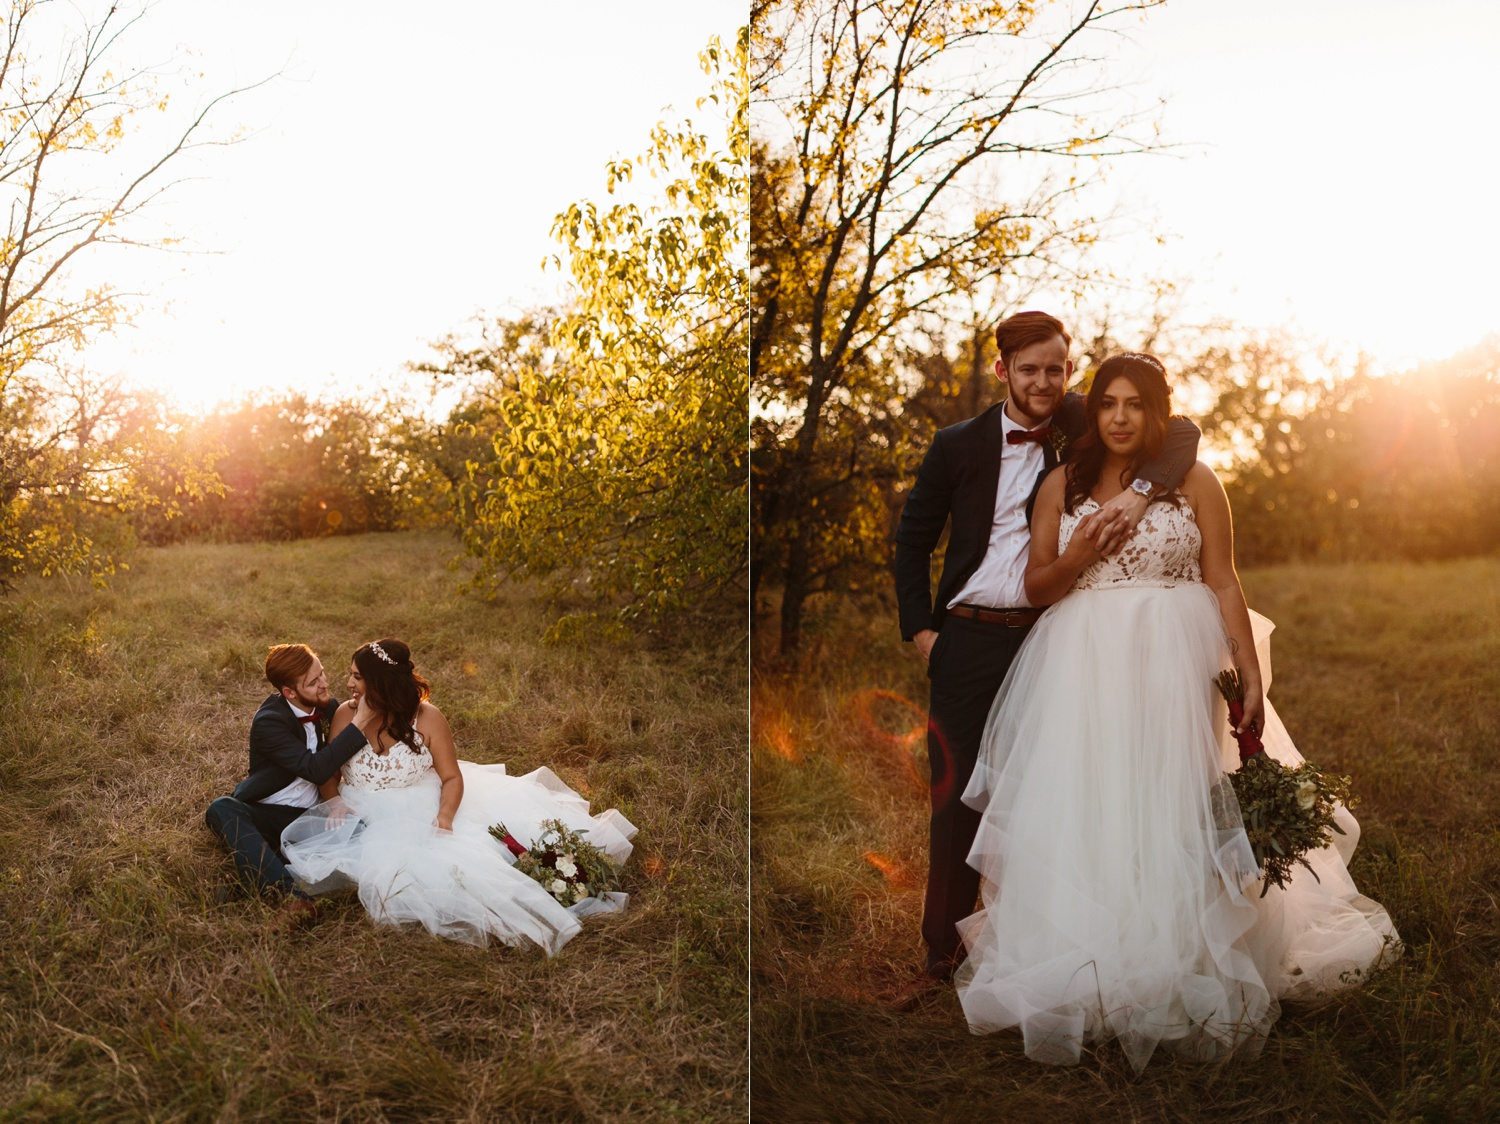 Grant + Lysette | a vibrant, deep burgundy and navy, and mixed metals wedding at Hidden Pines Chapel by North Texas Wedding Photographer Rachel Meagan Photography 234